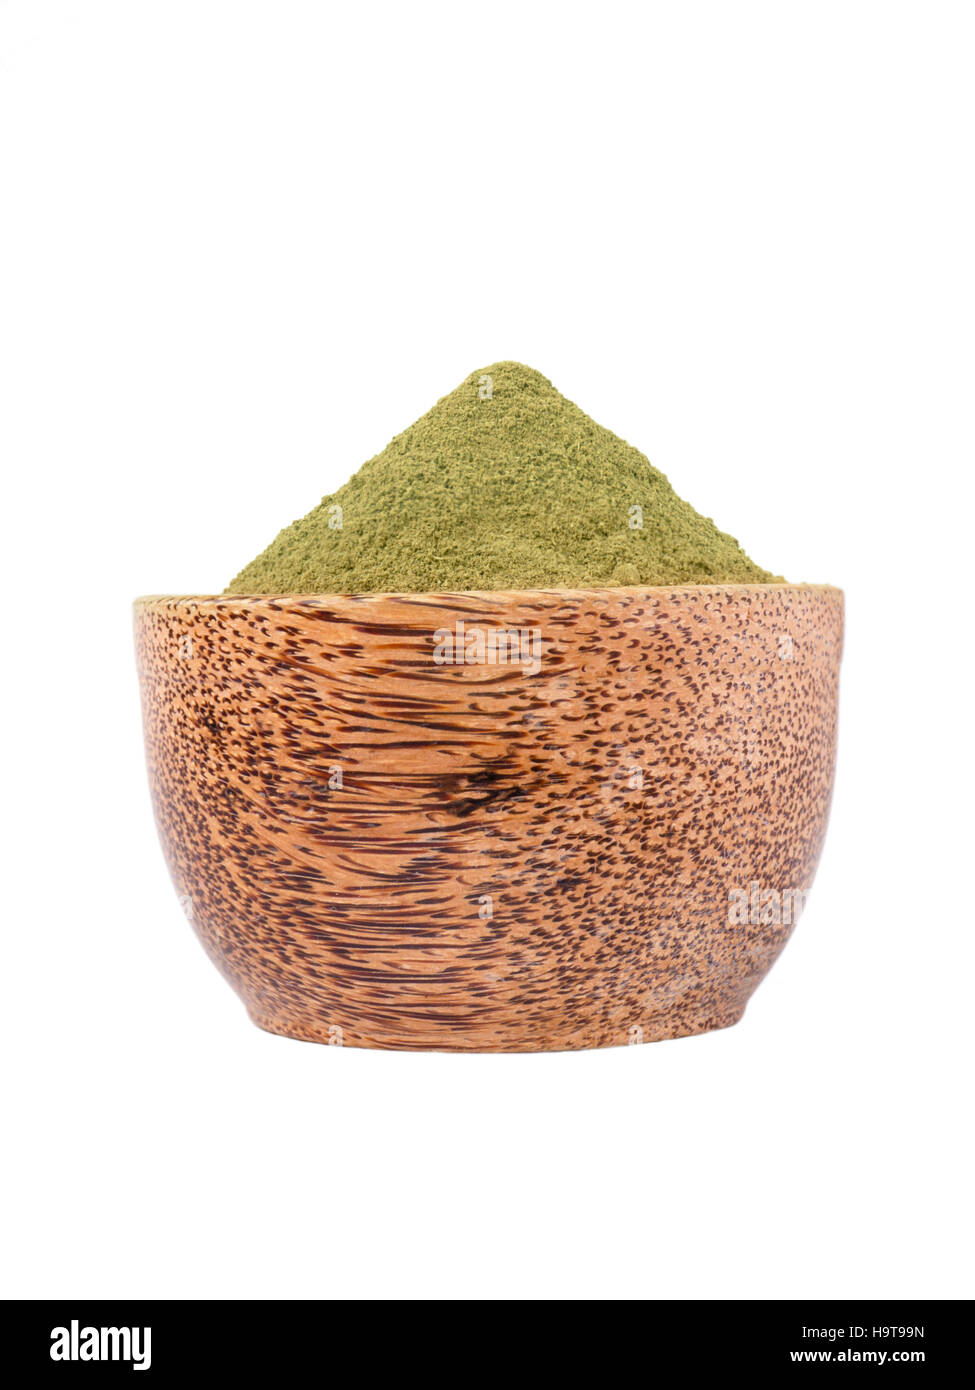 Henna lawsonia inermis powder in the coconut bowl isolated on white - Stock Image